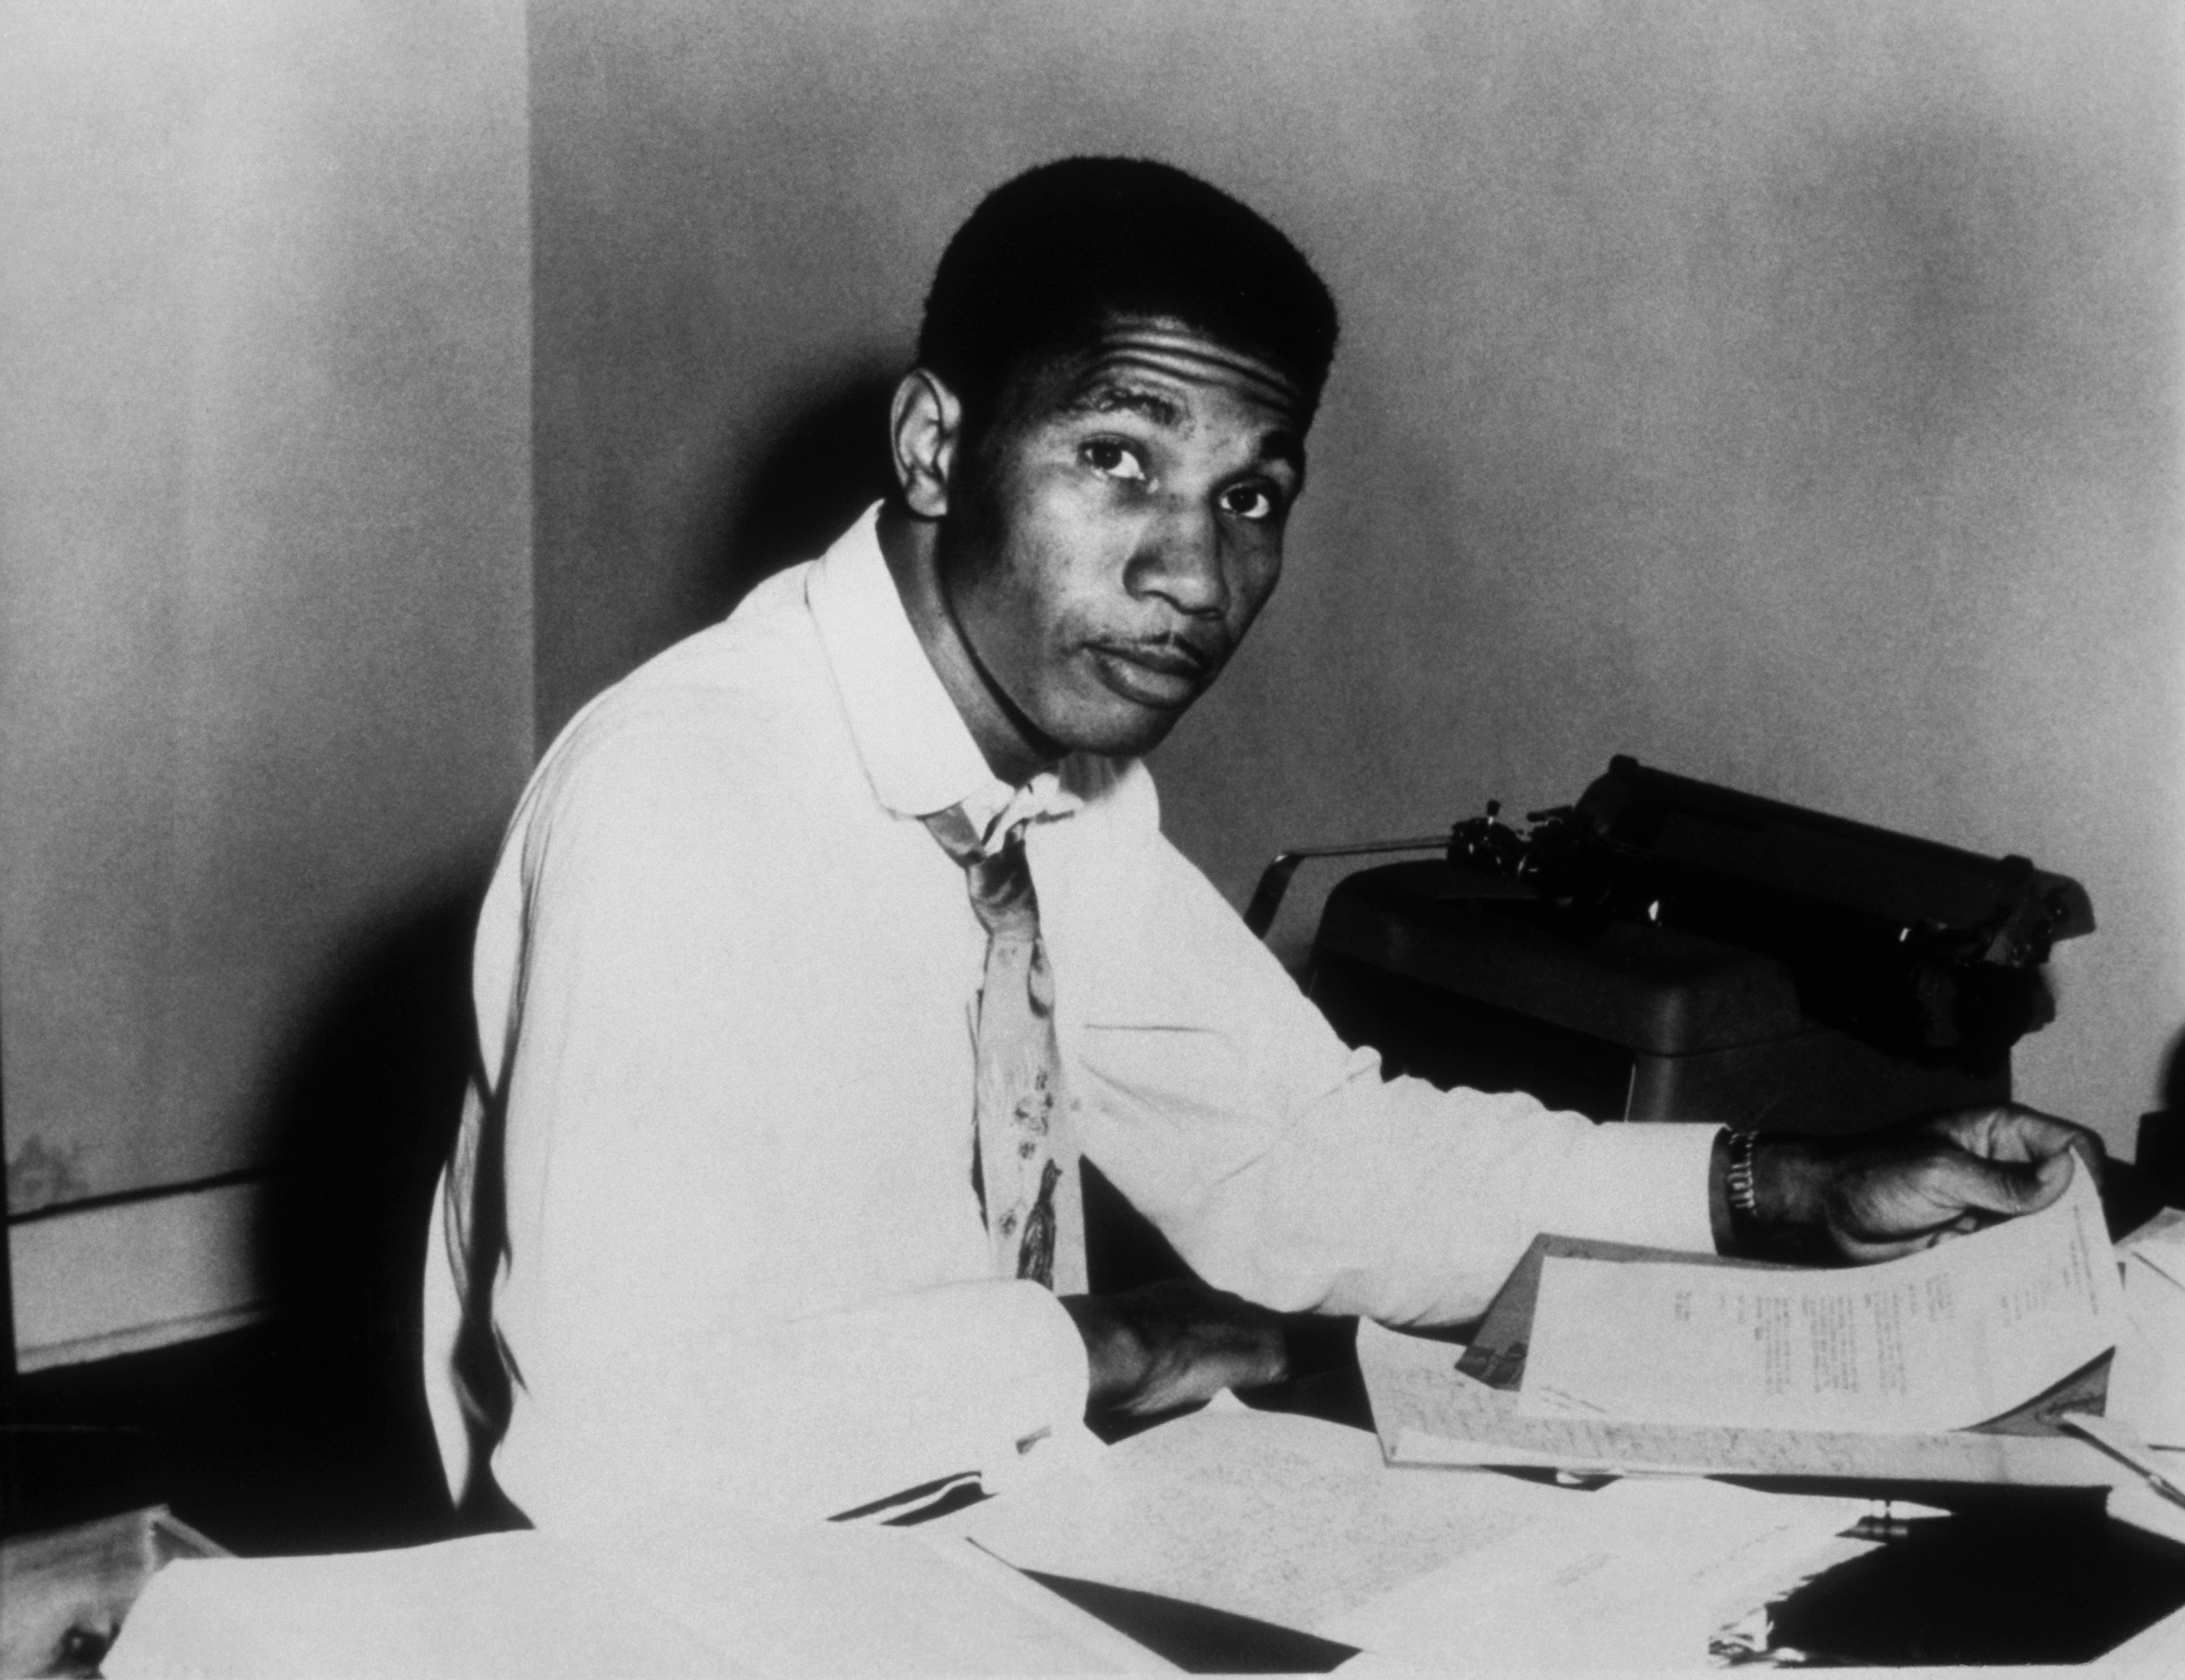 Civil Rights Activist and NAACP Field Secretary Medgar Evers poses for a portrait circa 1960 in Jackson, Mississippi.